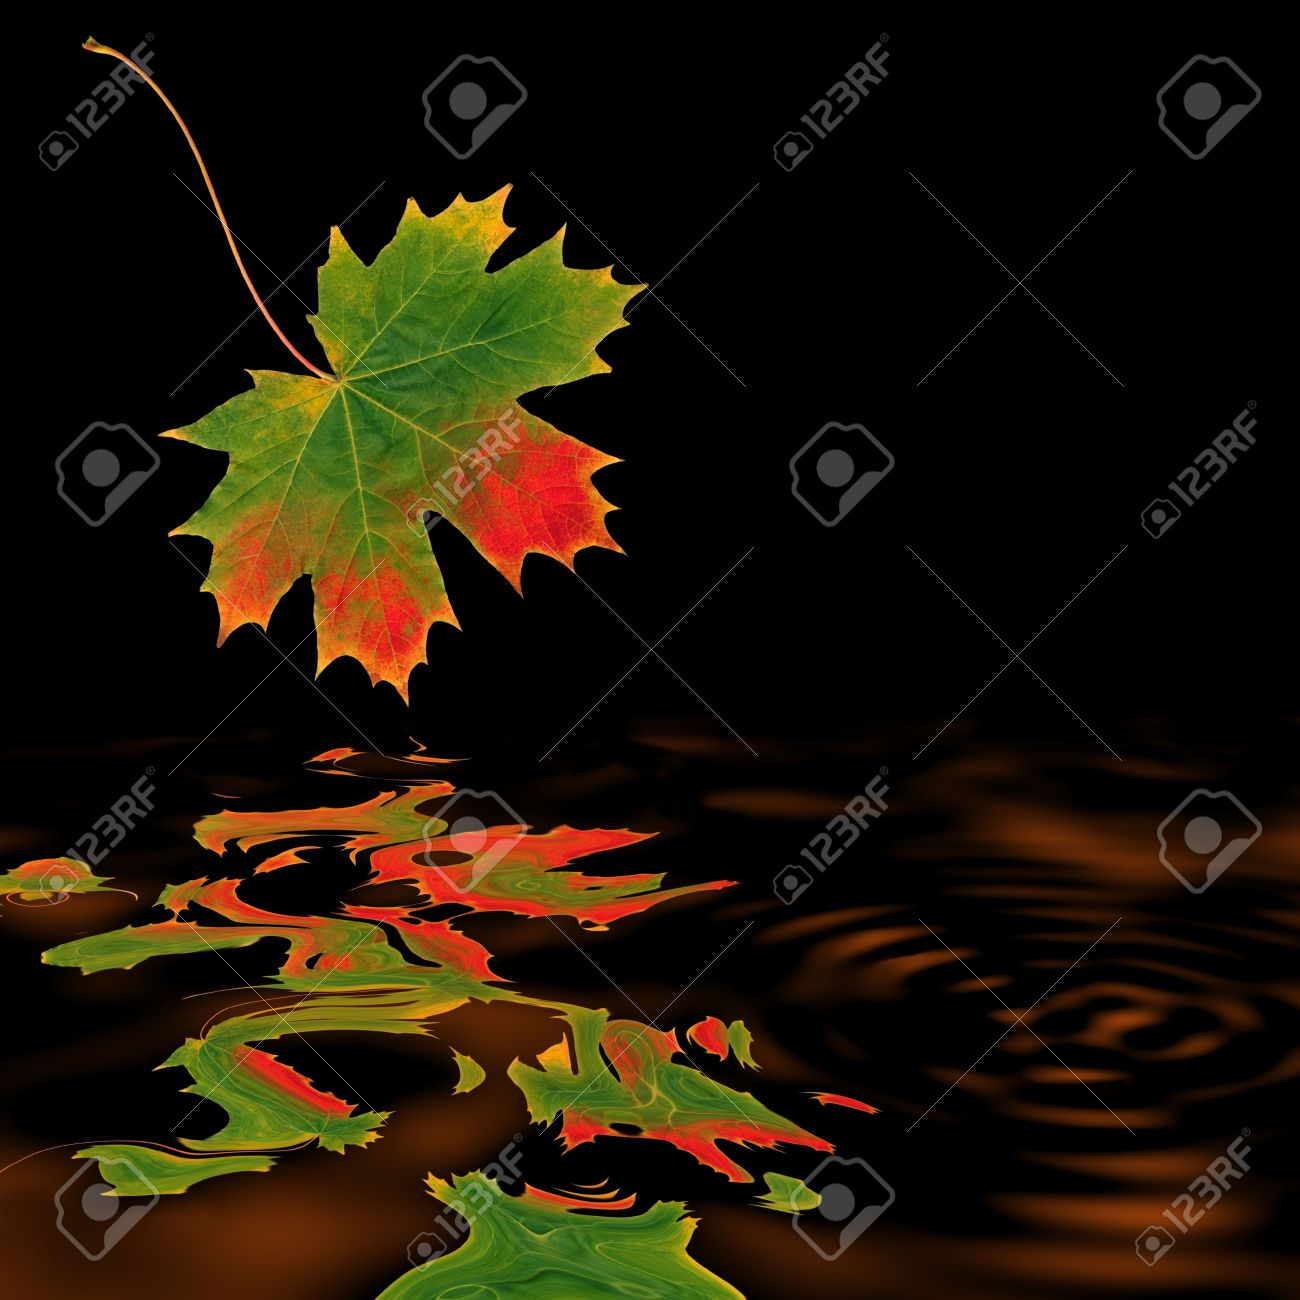 Abstract of a maple leaf in autumn with reflecton over burnished copper colored rippled water and set against a black background. Stock Photo - 2661432